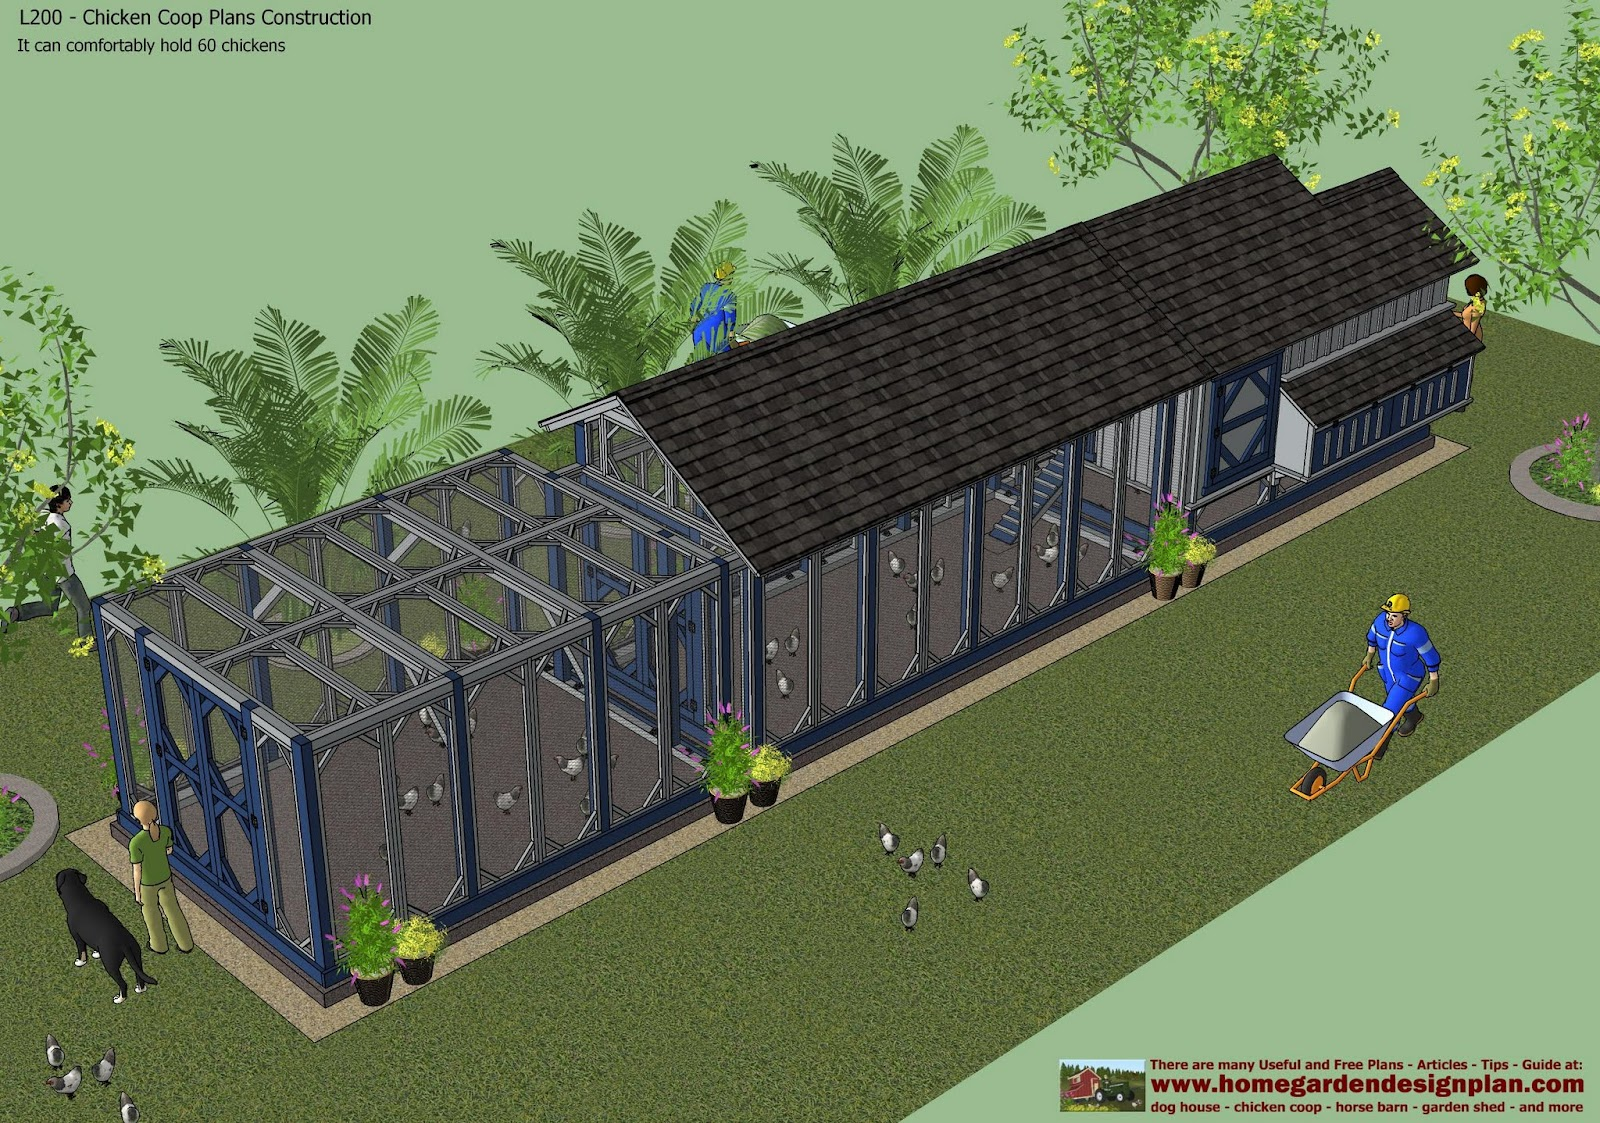 Home garden plans l200 chicken coop plans construction for Chicken run plans